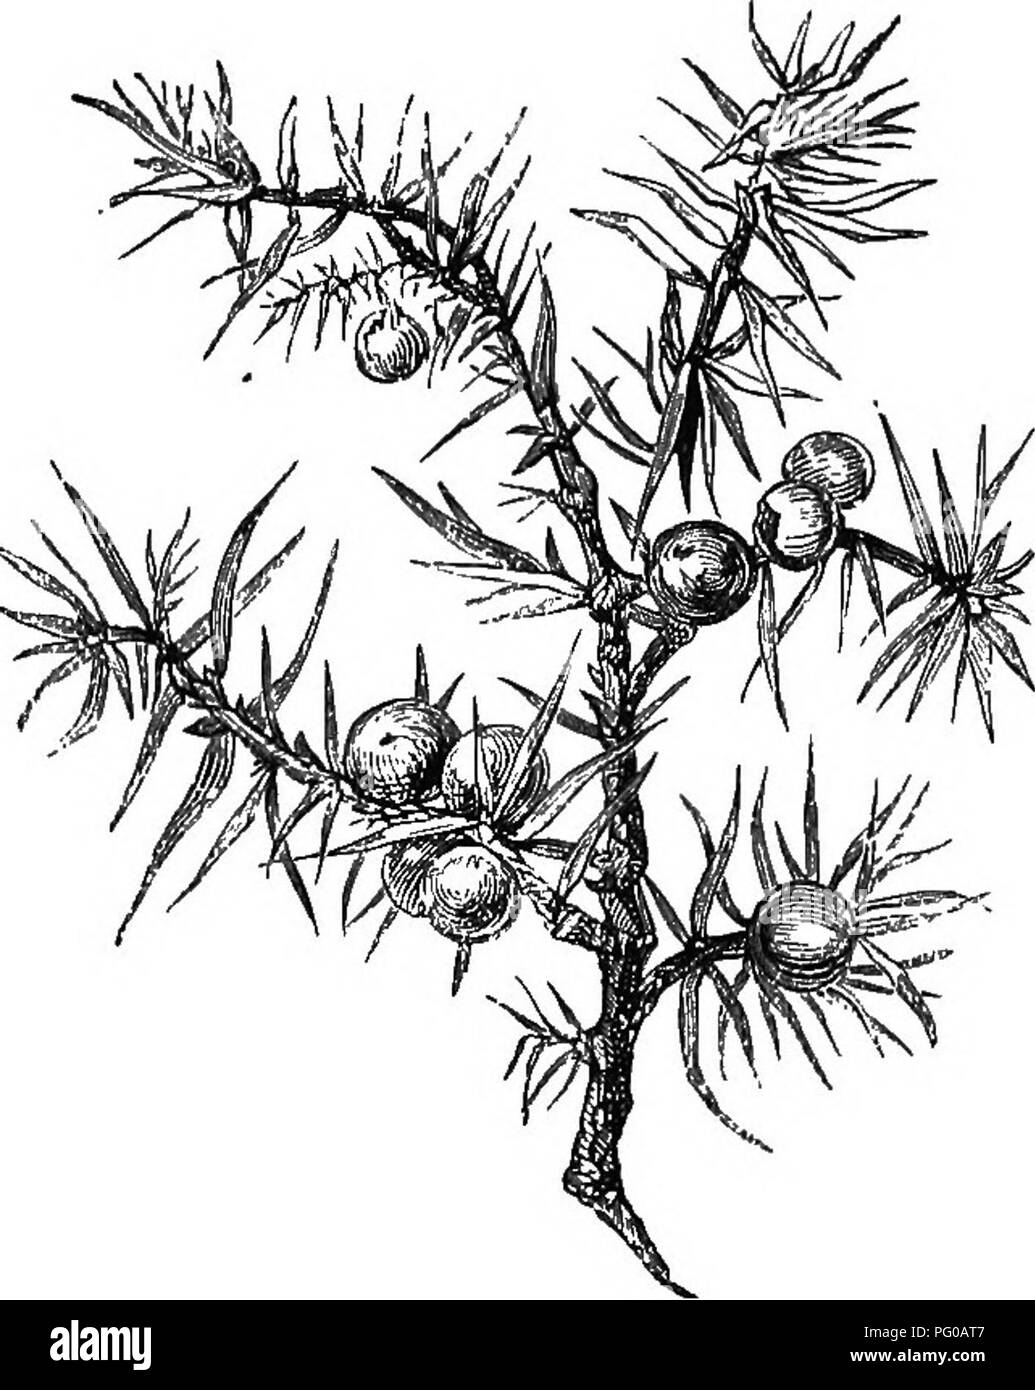 . Our woodland trees . Trees; Trees. THE JUNIPER. 607 flowers are of a wliitisli-yellow colour; and its fruit (shown in the illustration on this page) is in the form of purple or purplish-black and fleshy berries. The Juniper is easily grown on sandy soil, and can be propagated either by seed, by. cuttings, or by layers. Its trunk or stem is usually too small to produce any appreciable quantity of wood. But it is aromatic, of a yellowish-brown colour, very durable, finely veined, and susceptible of a high poHsh, and is useful and. Please note that these images are extracted from scanned page i - Stock Image